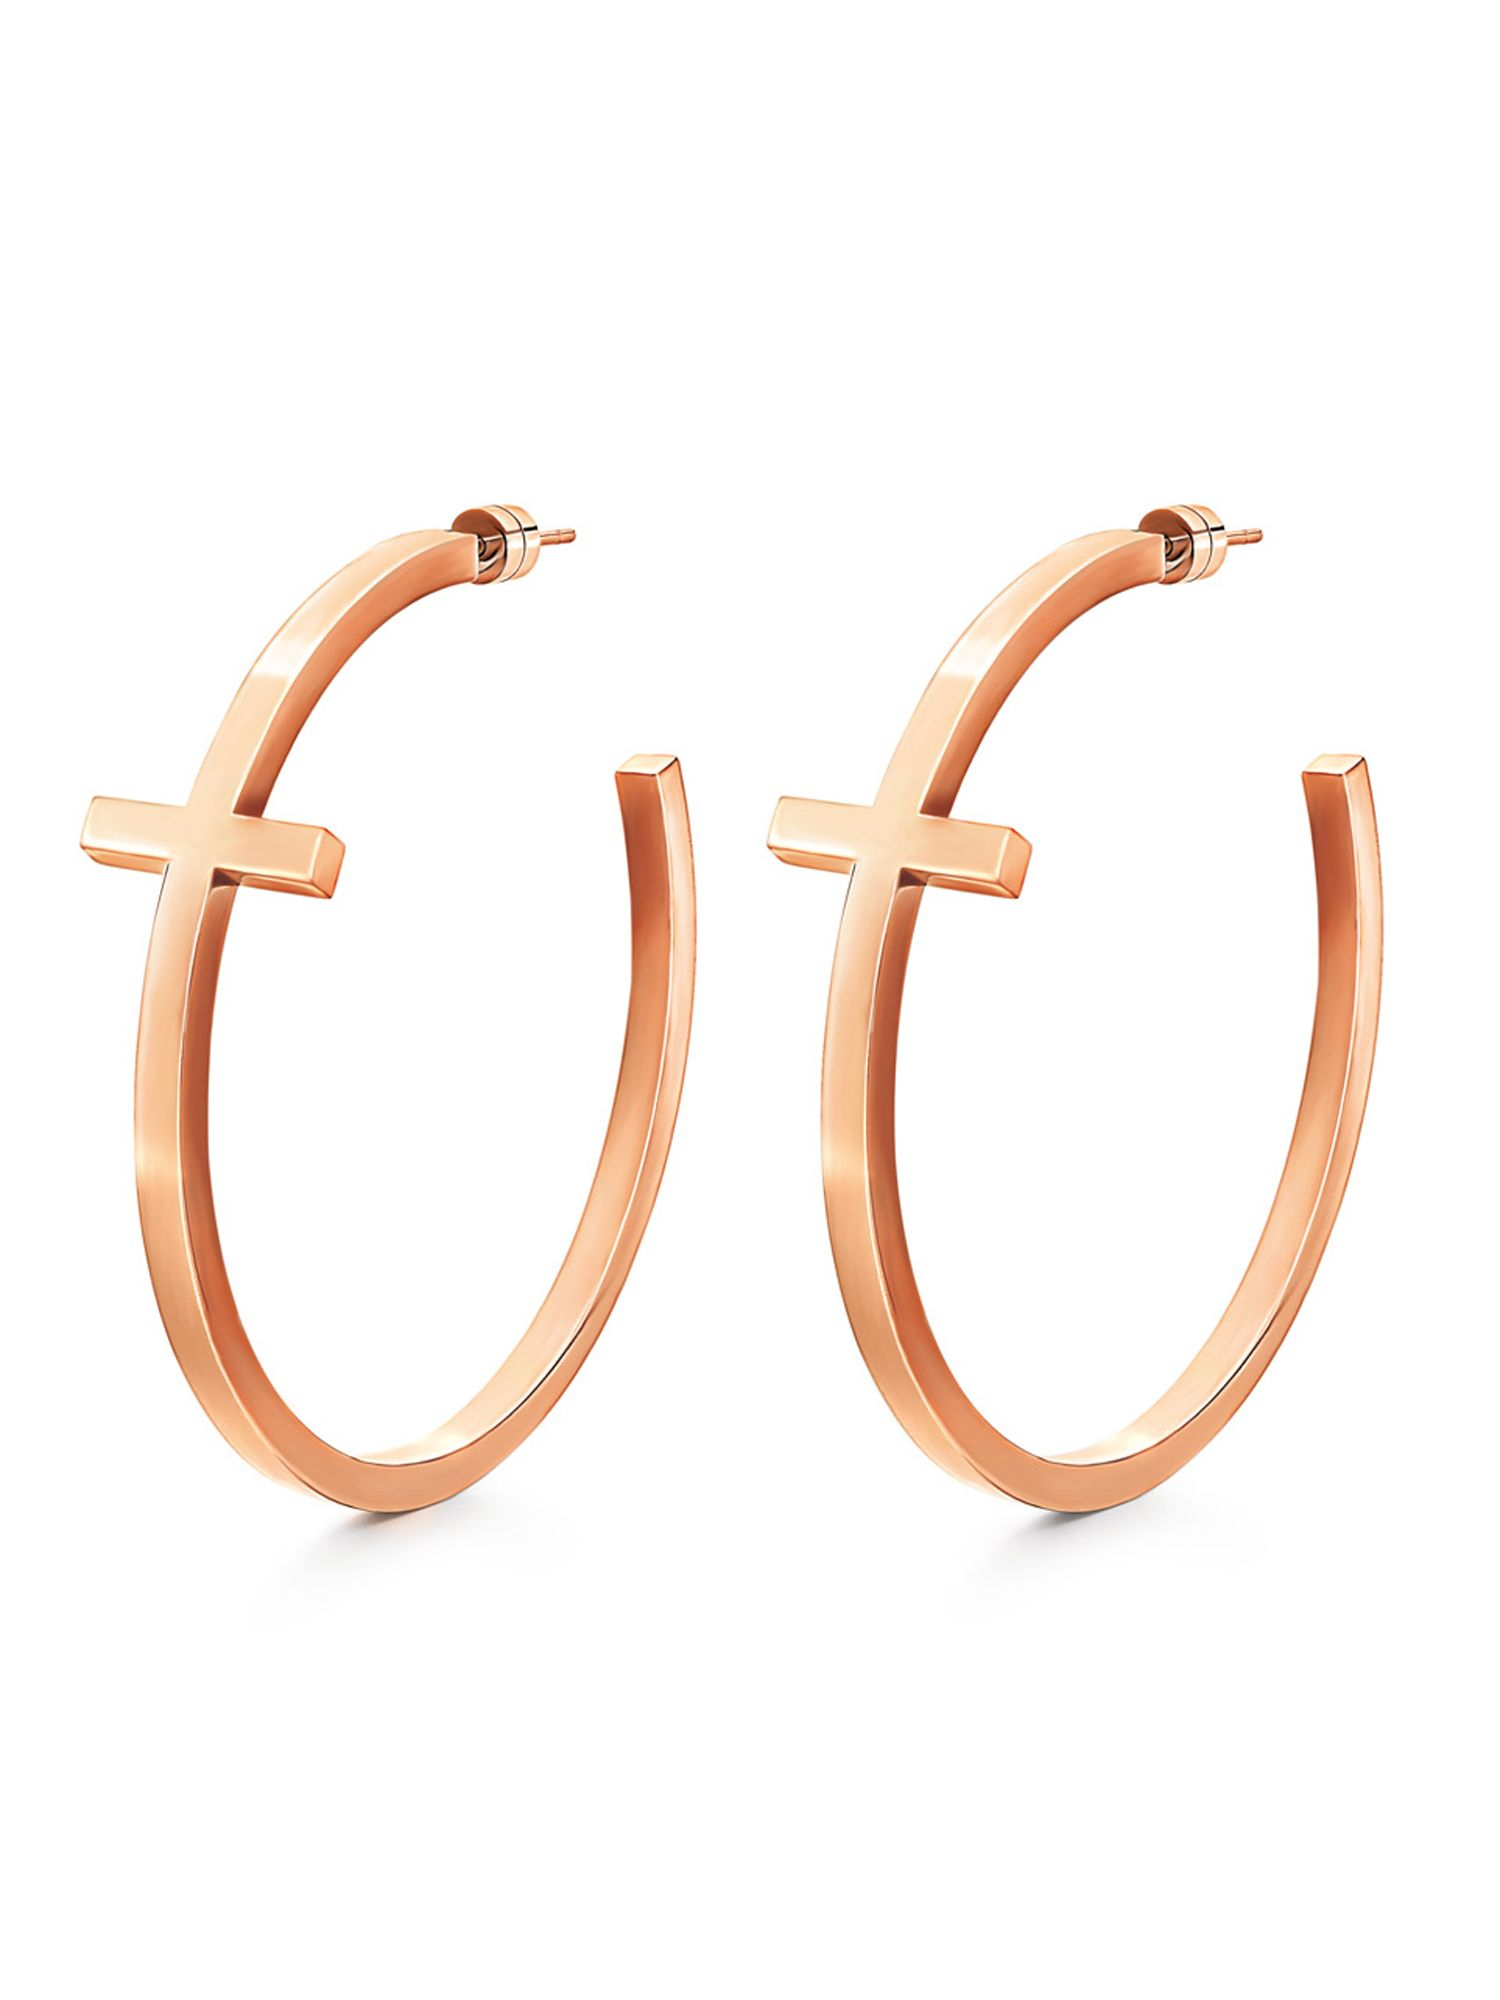 Karma rose gold earrings